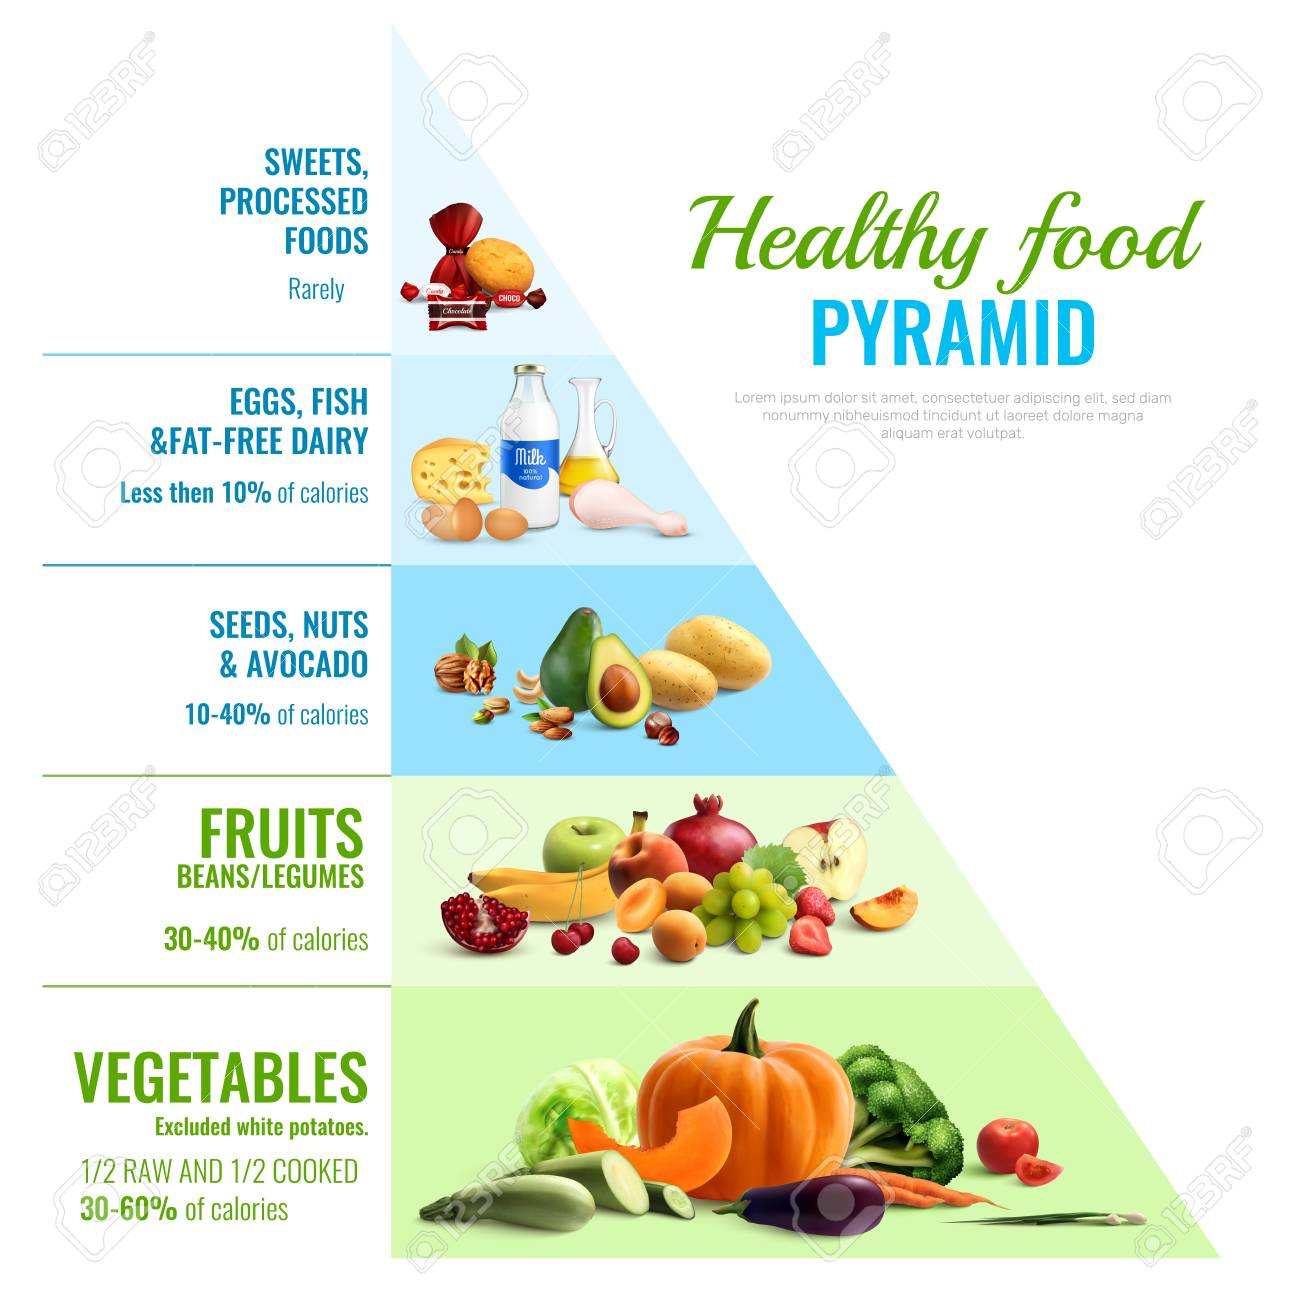 Healthy eating pyramid realistic infographic visual guide poster of type and proportions daily food nutrition vector illustration - 113844633